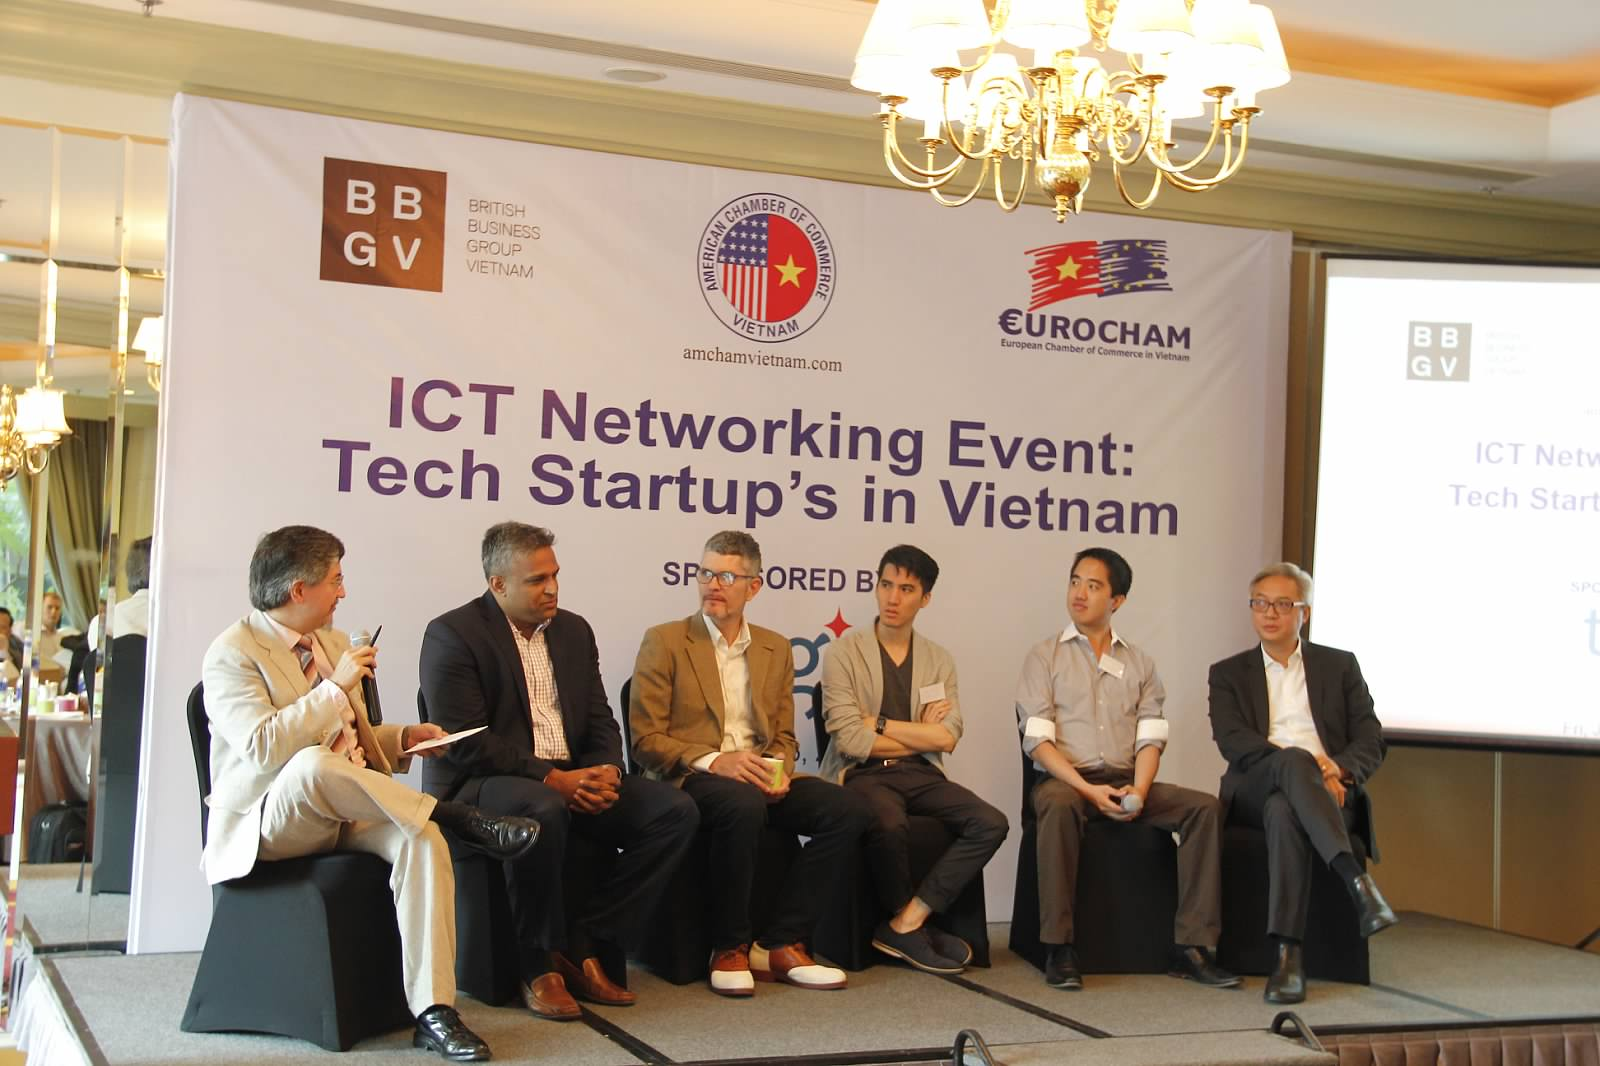 Mr. Rick and speakers were answering questions about tech start-ups in Vietnam